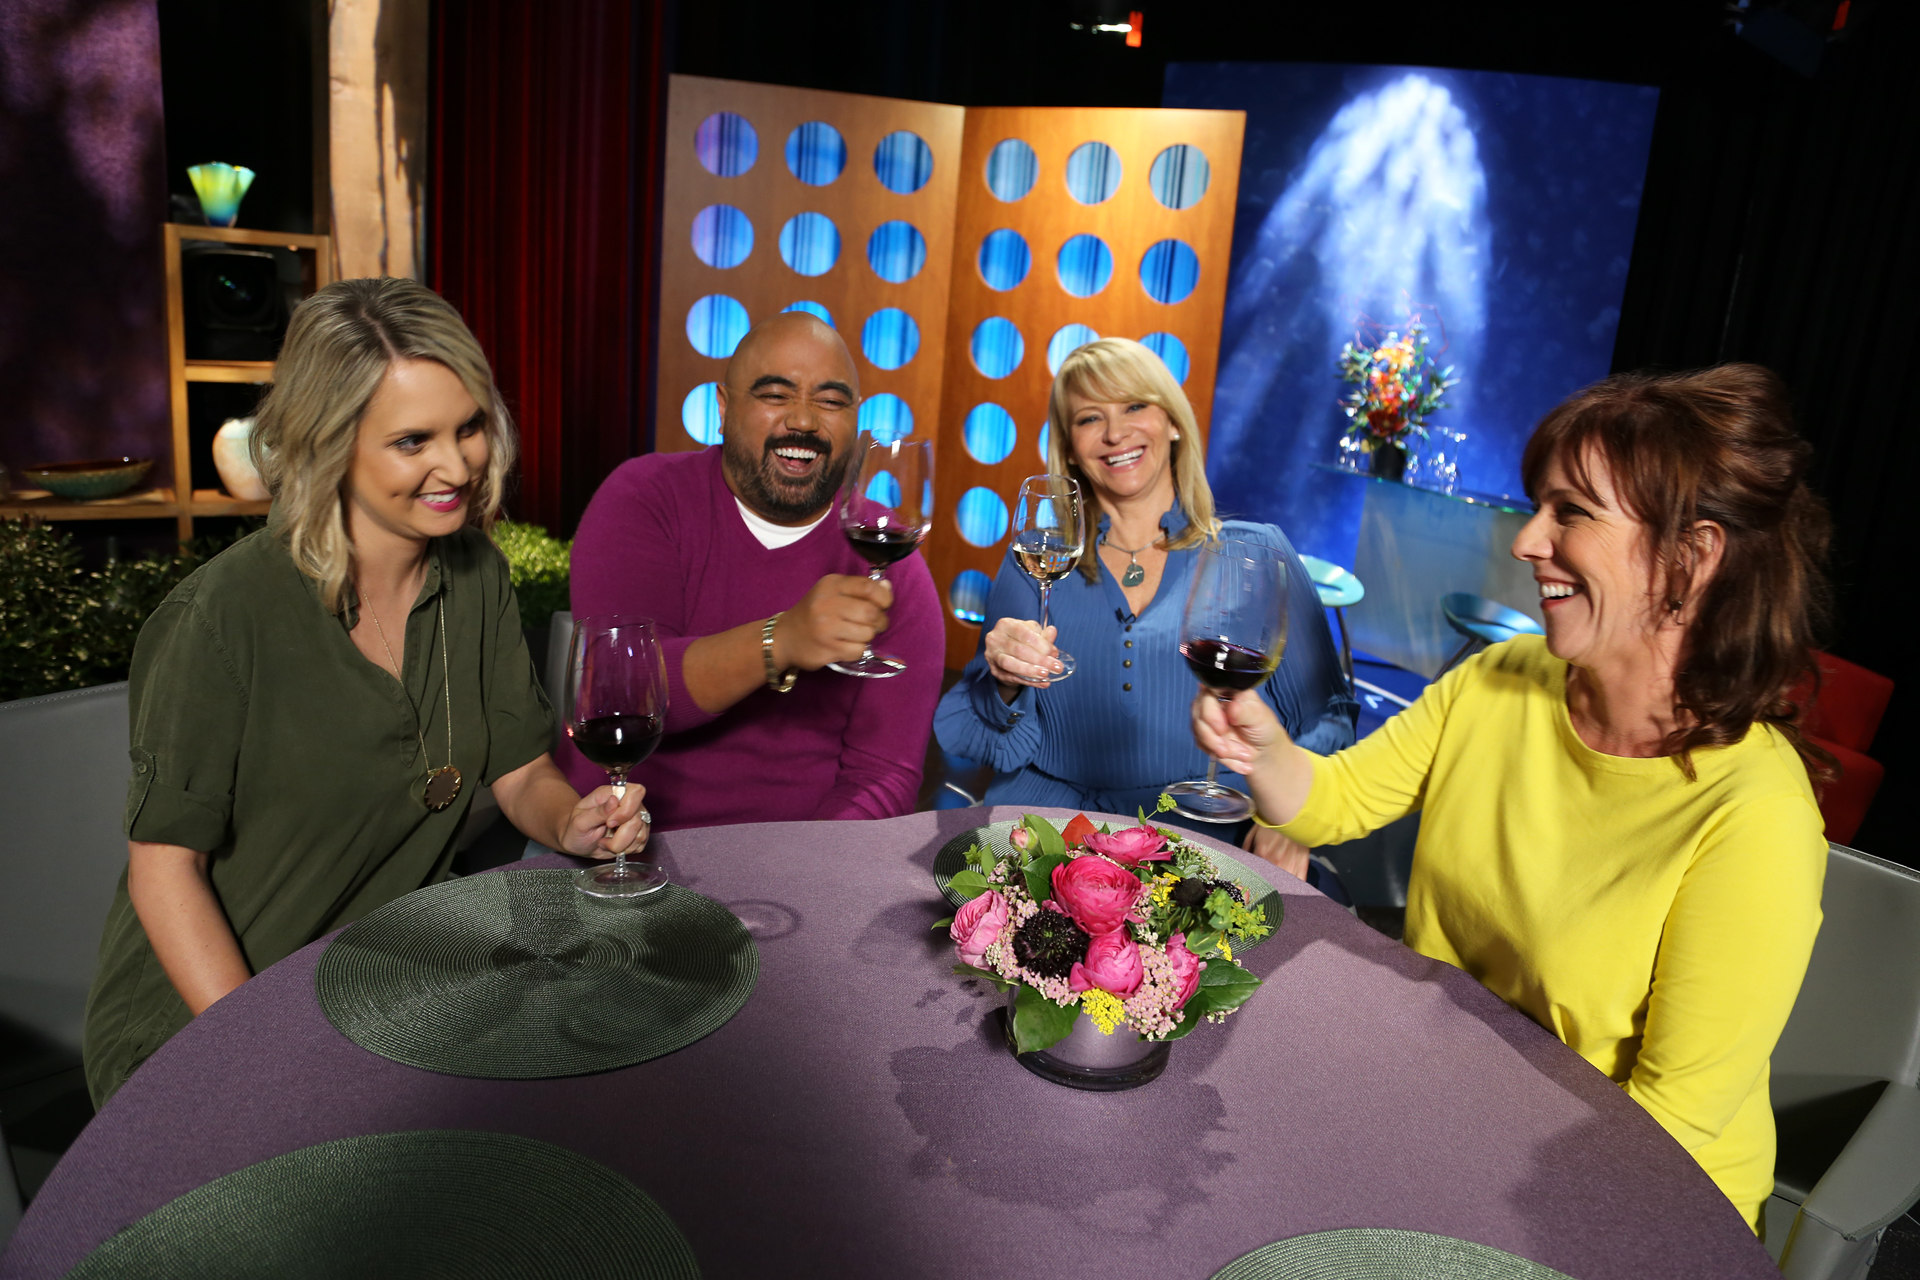 Host Leslie Sbrocco and guests having fun on the set of season 12 episode 19.